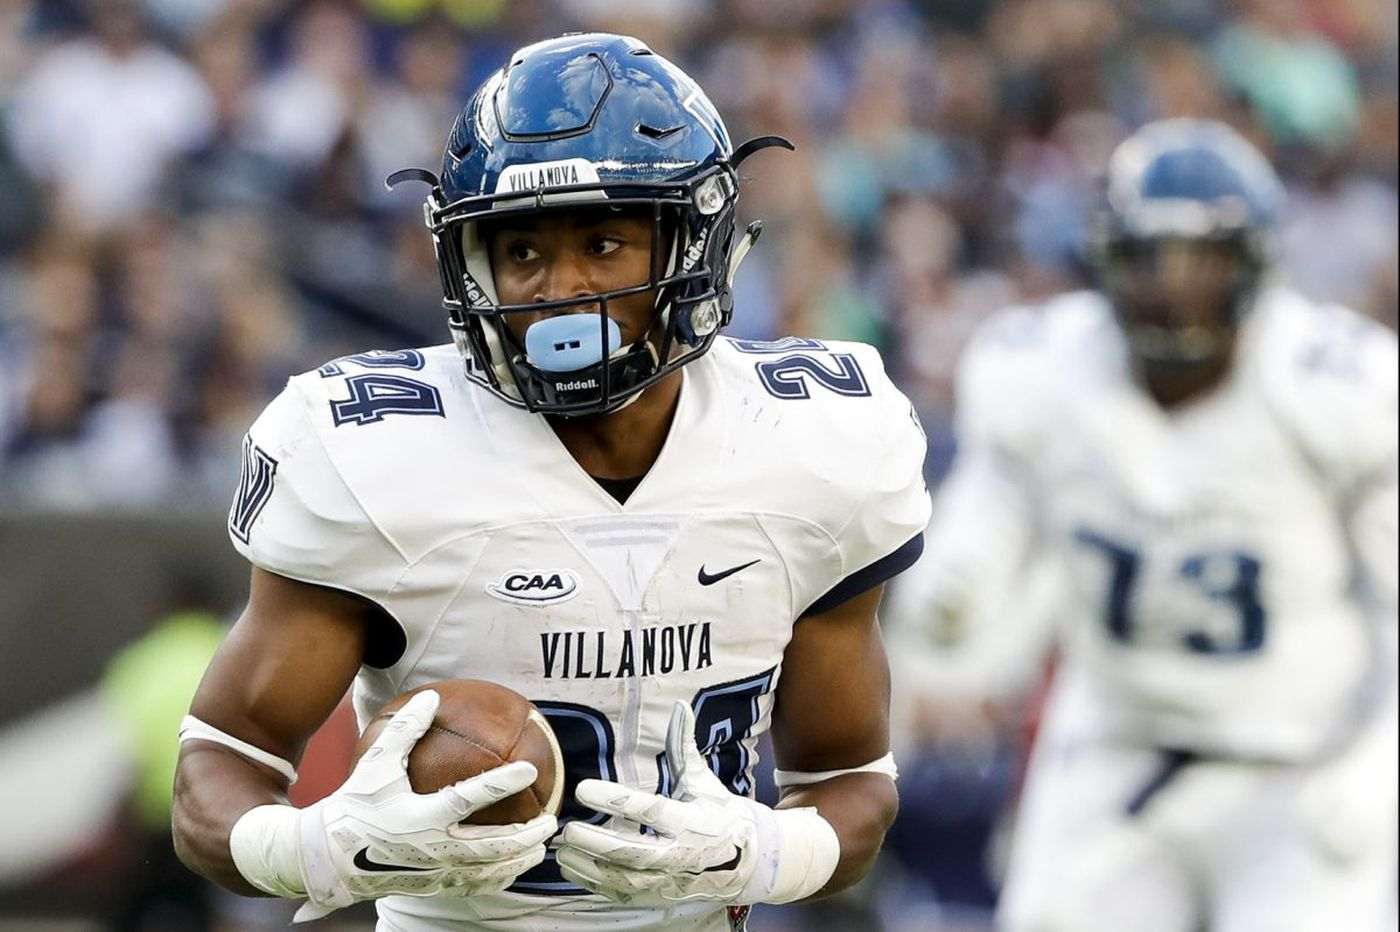 Villanova still playing for something significant